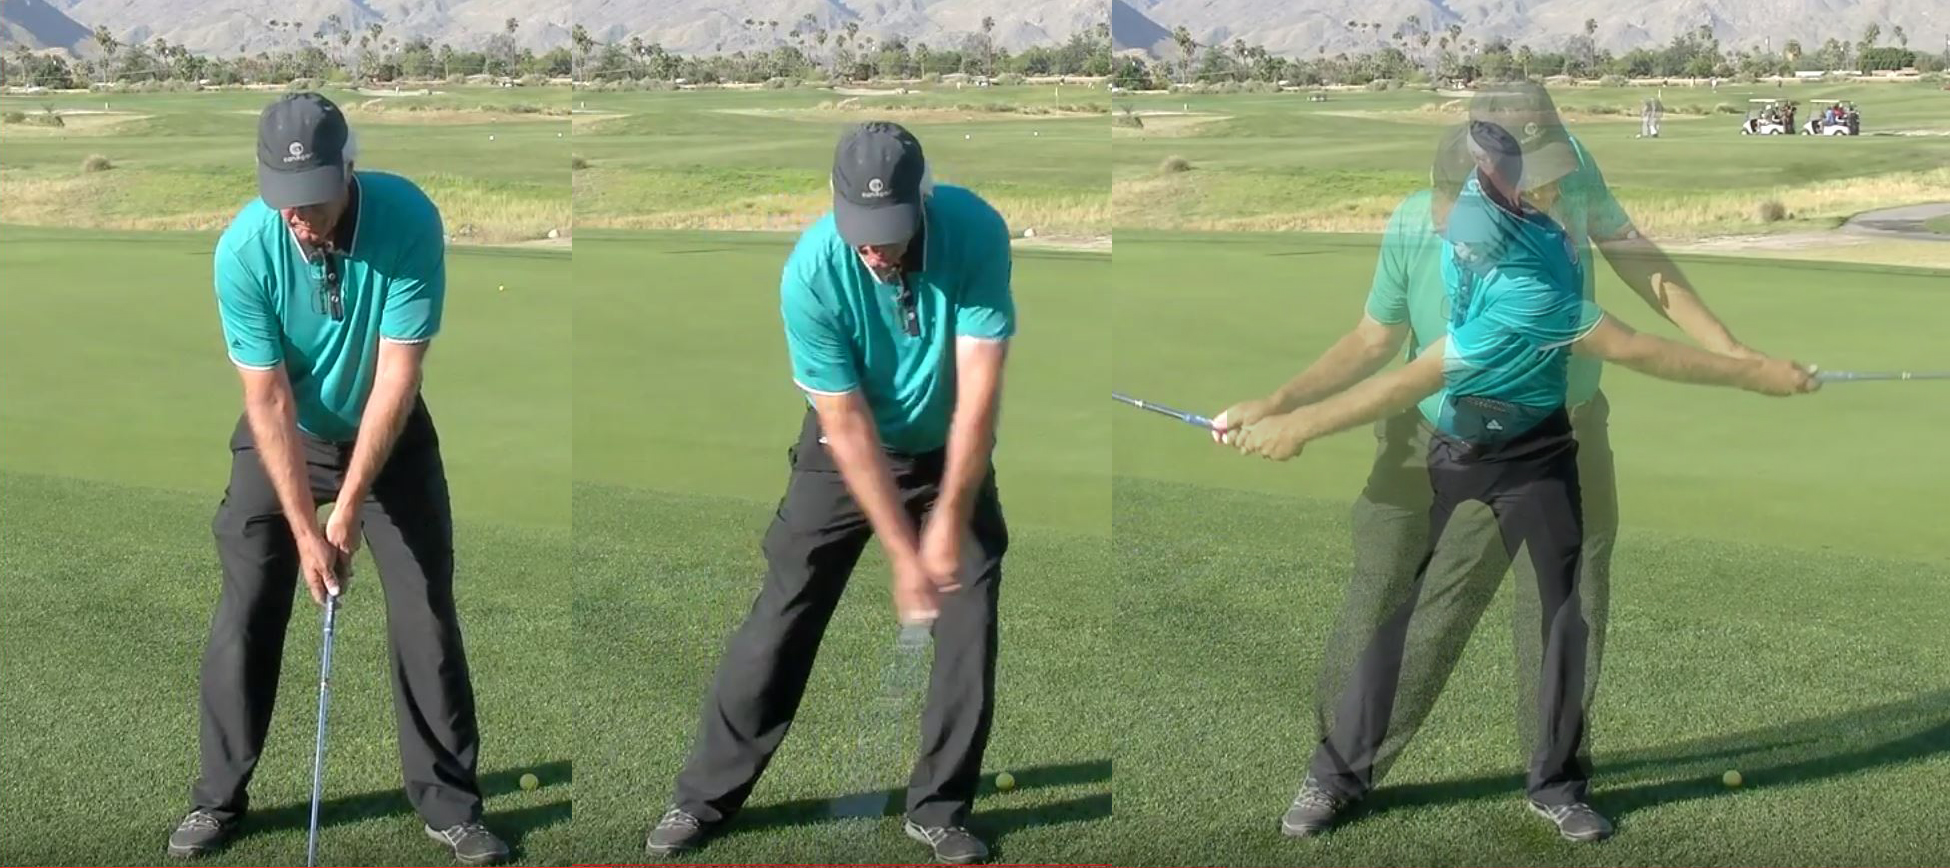 1-2-3    1-Neutral Position 2-Over  3-Swing     Works like a charm.